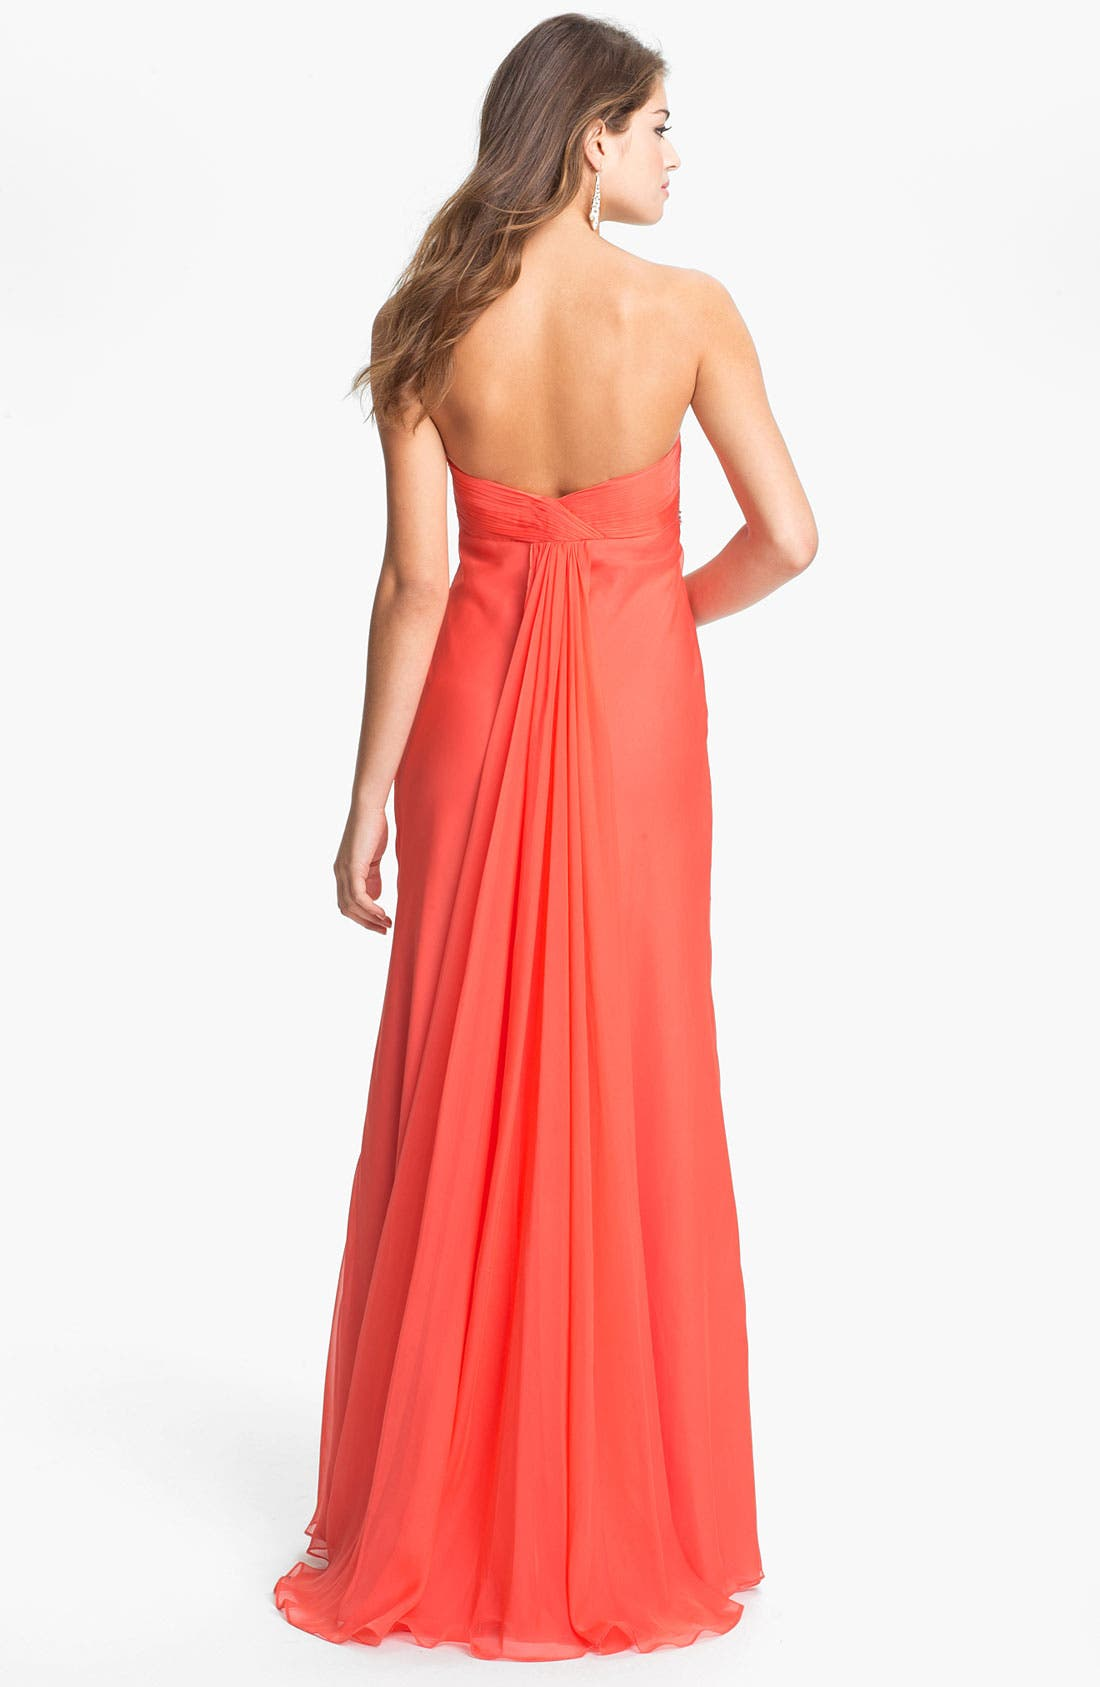 FAVIANA, Embellished Strapless Chiffon Gown, Alternate thumbnail 3, color, 839